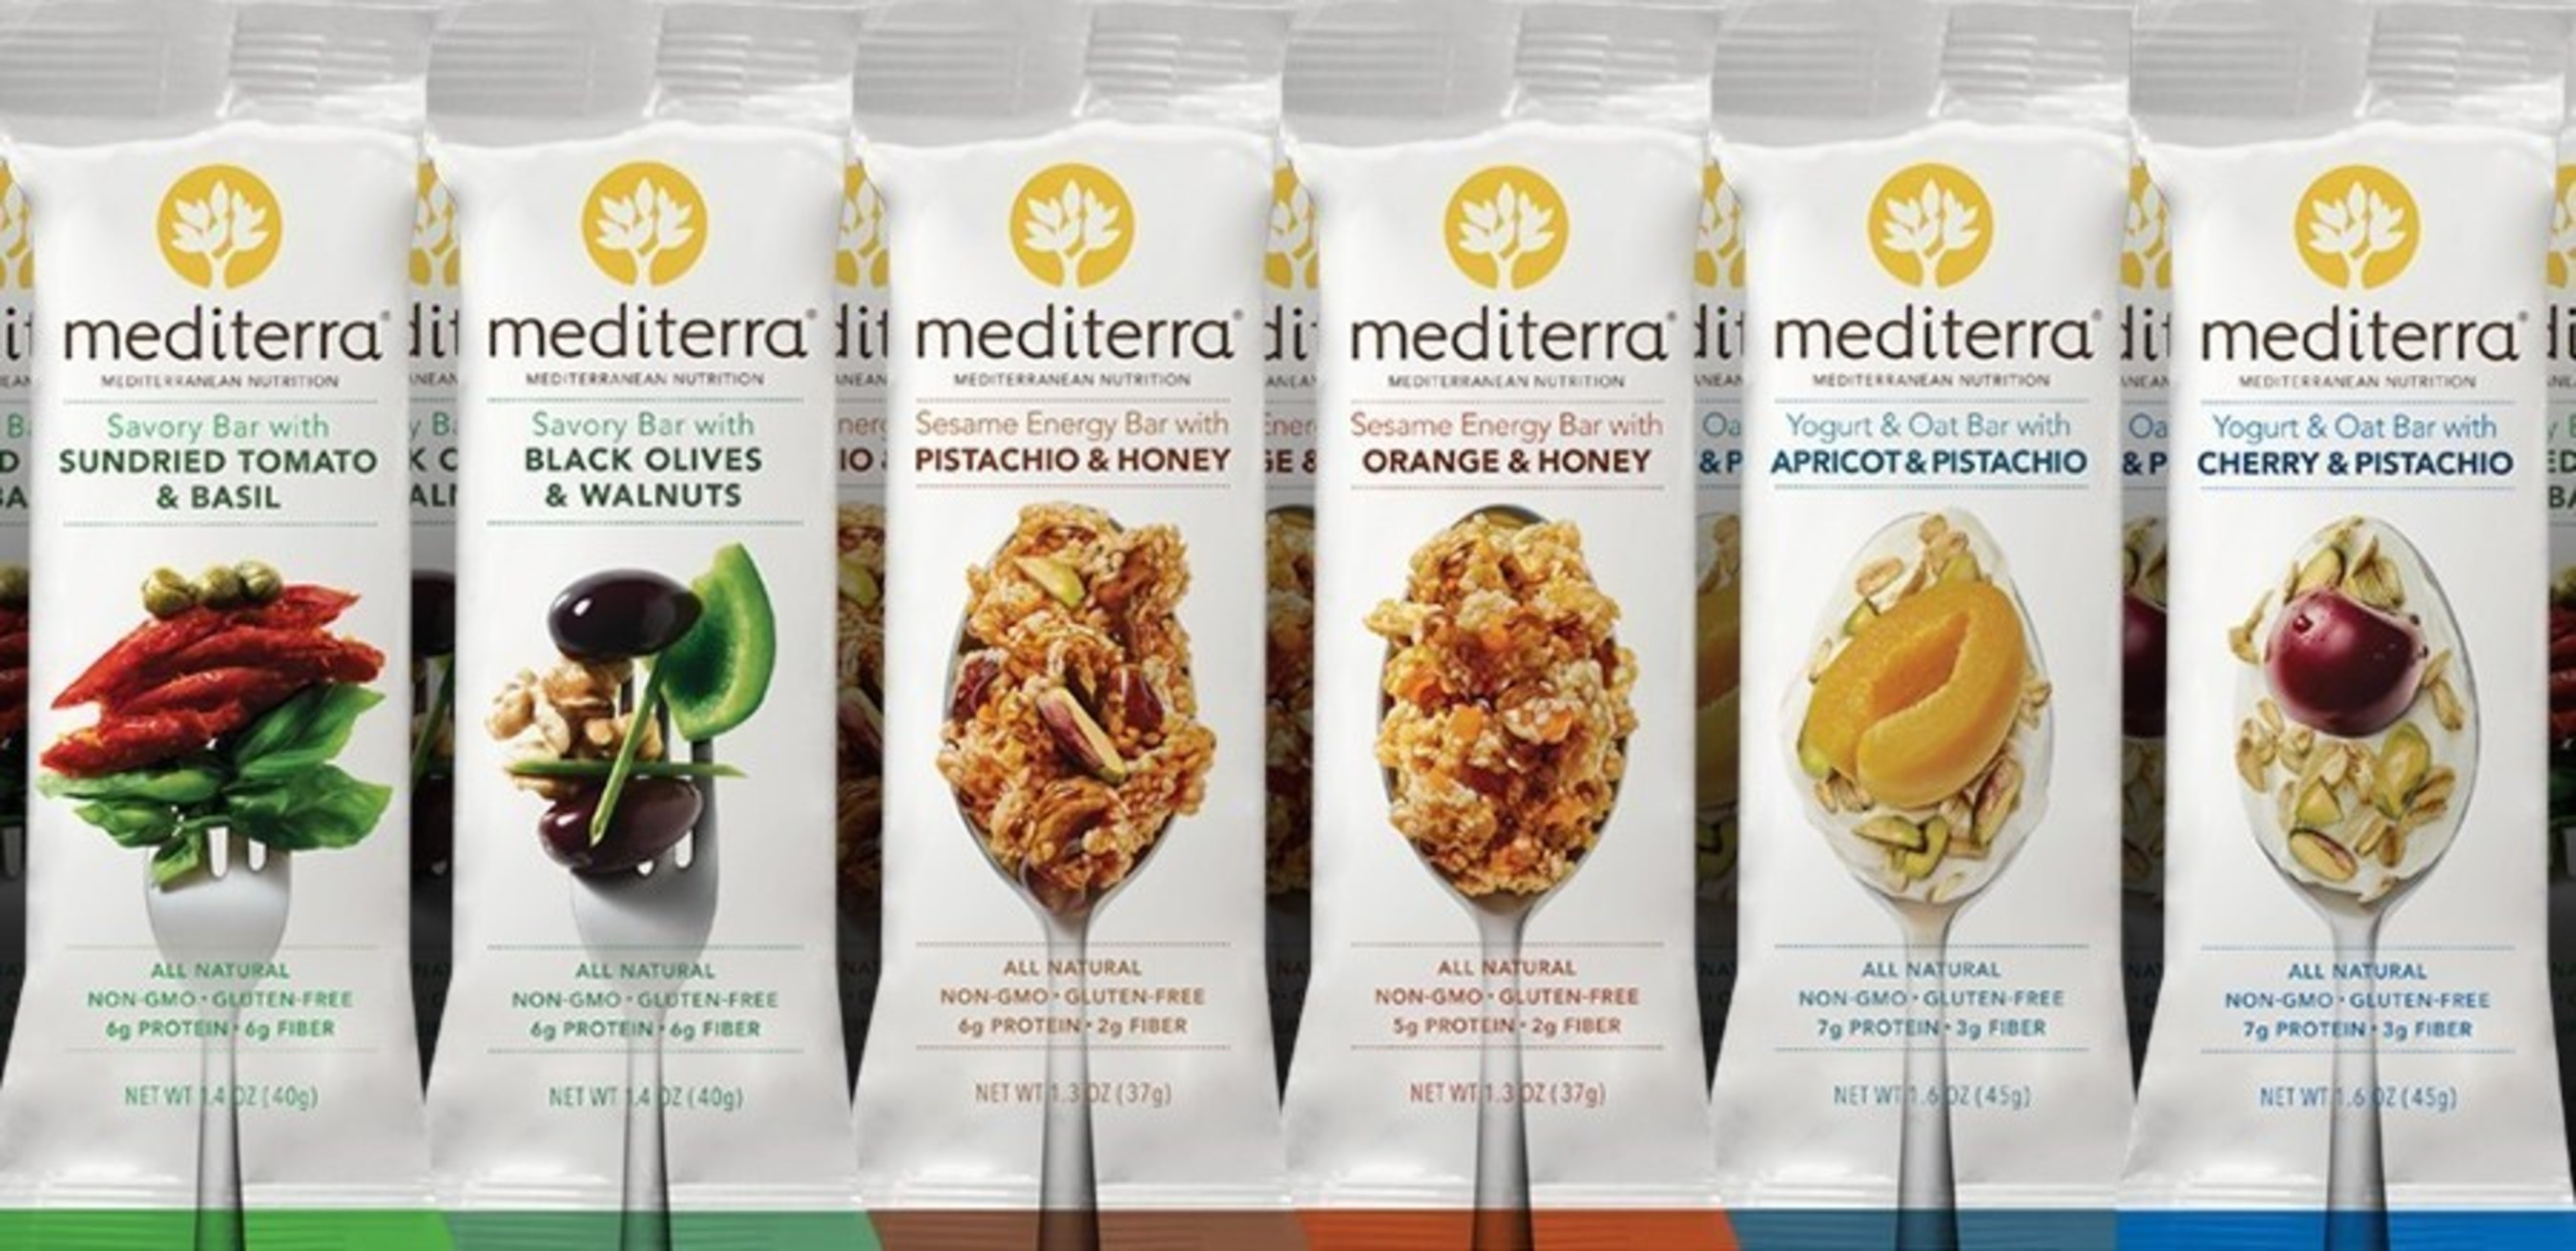 Mediterra, the first nutrition bars based on the Mediterranean Diet, makes its Target stores debut. The six various bar flavors feature fruits, vegetables, seeds and grains native to the Mediterranean region. The bars are all-natural, non-GMO and Gluten-Free.